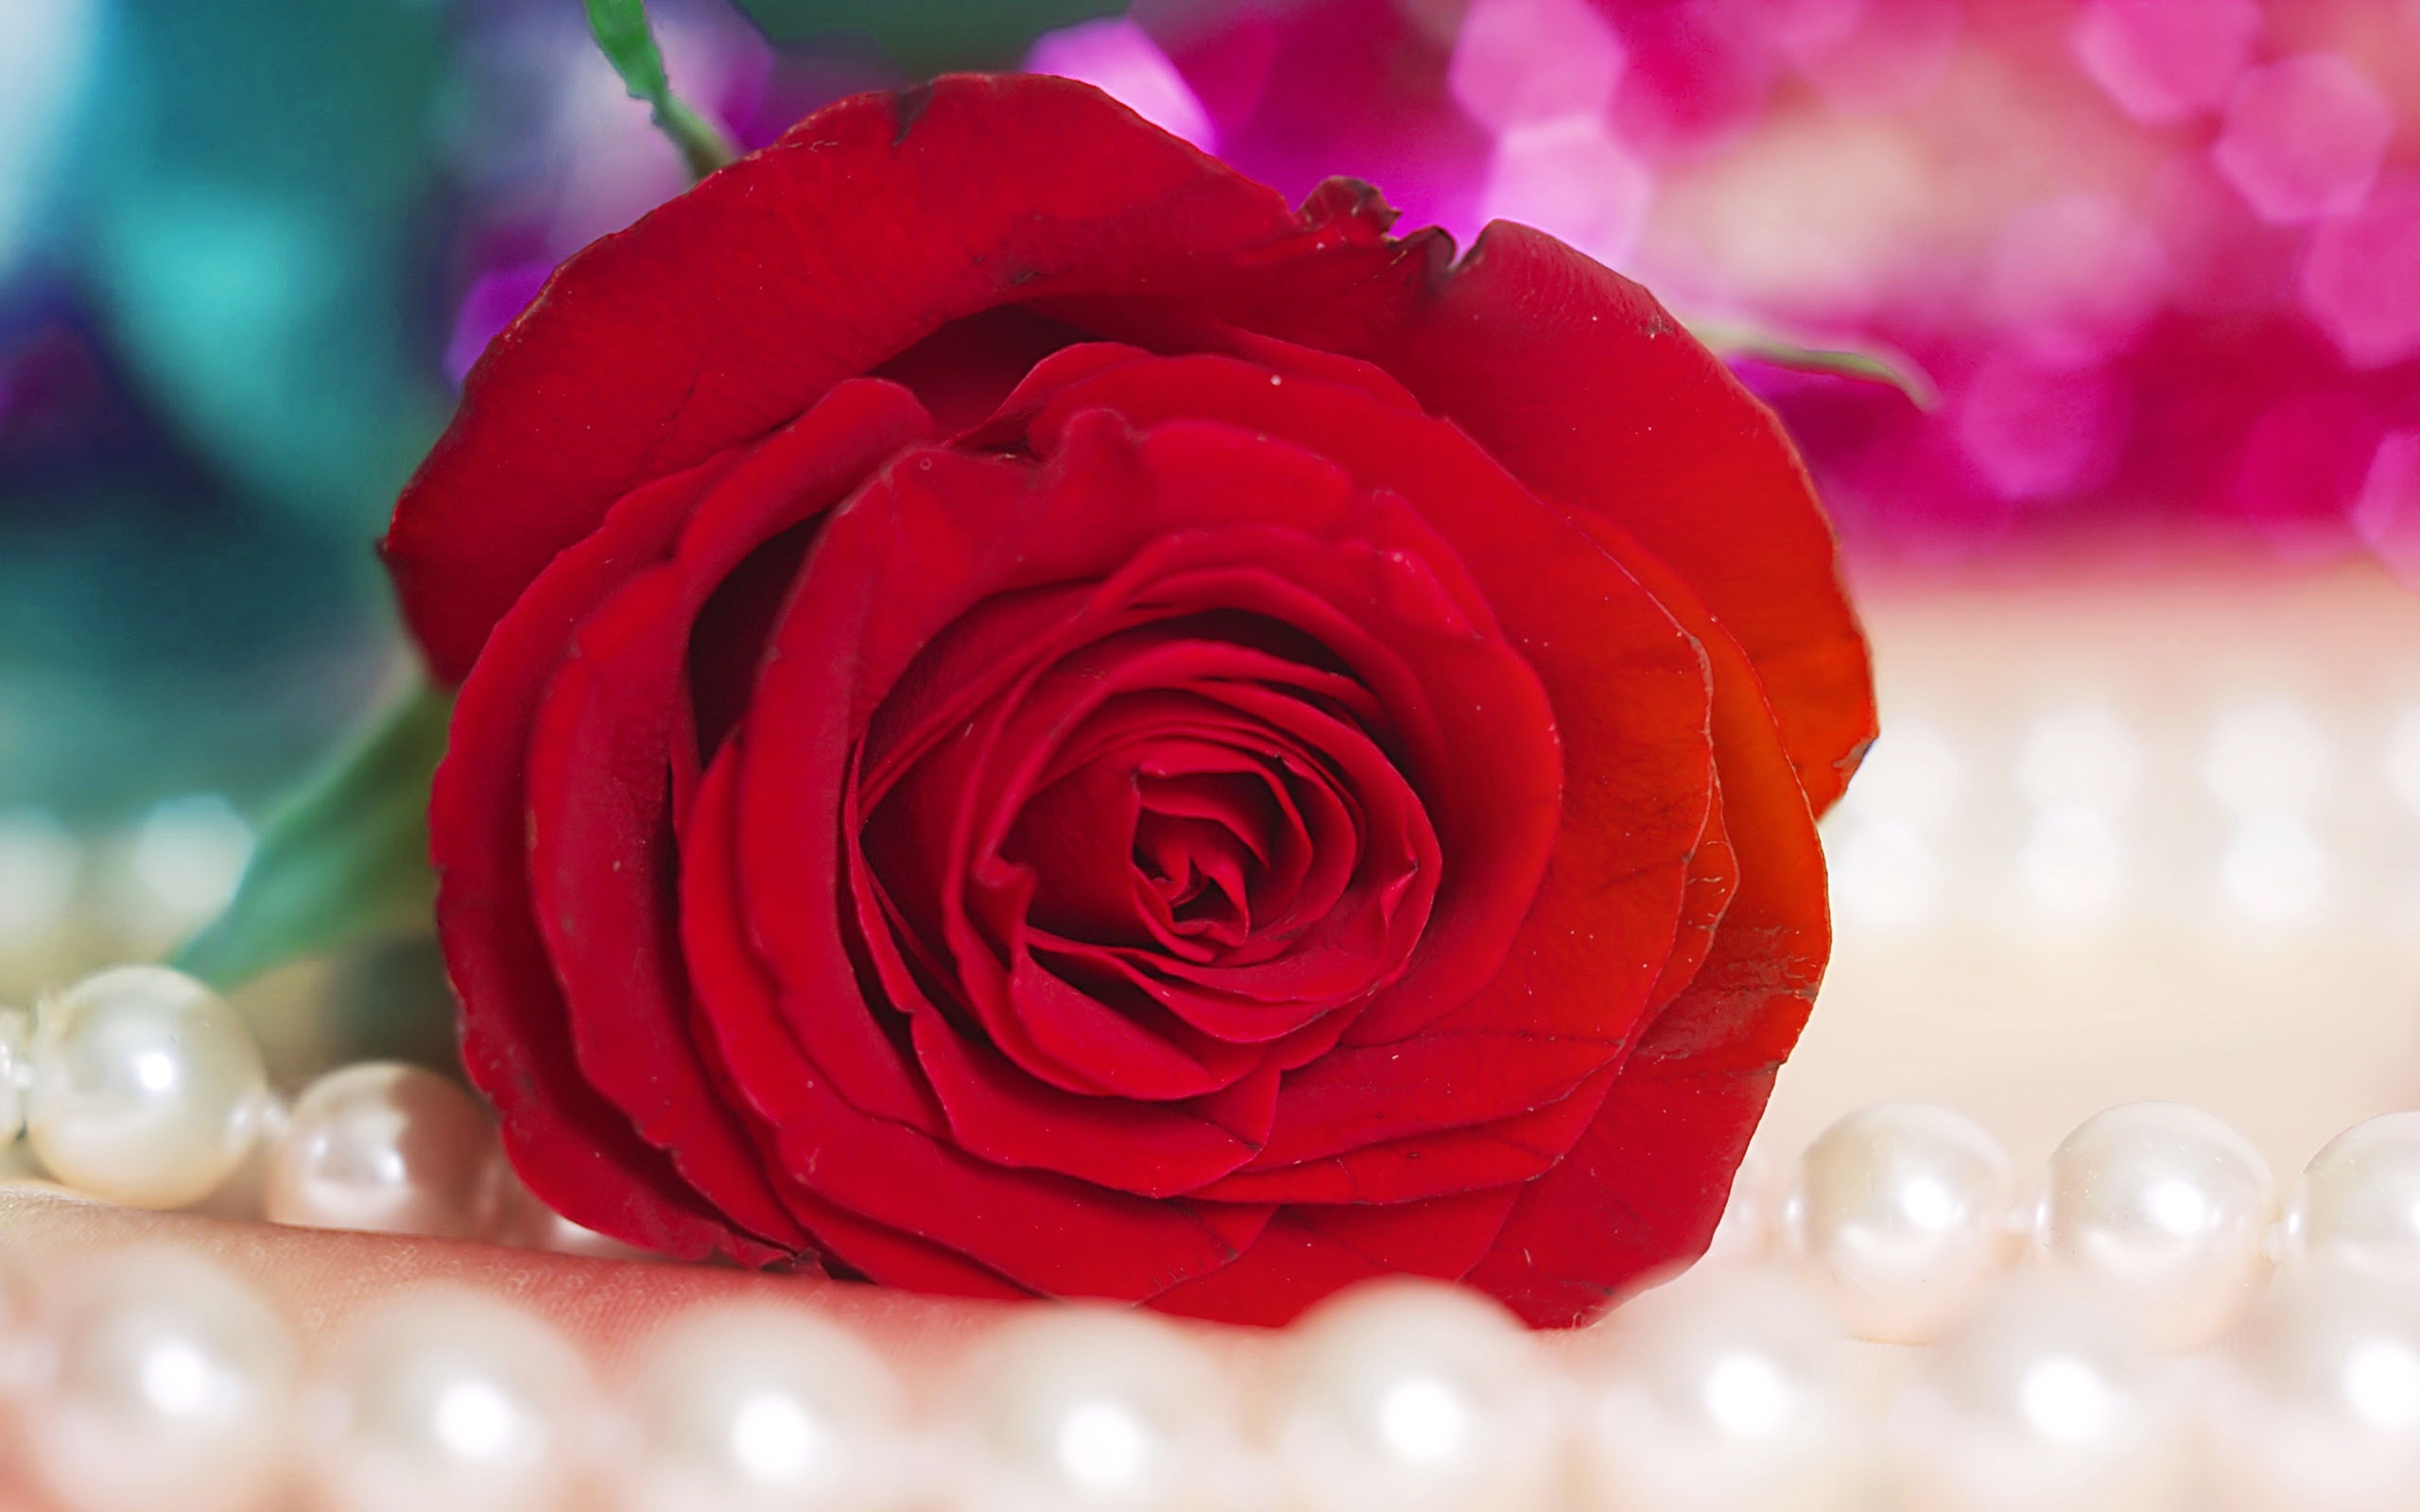 Red roses wallpaper - Red Rose 5